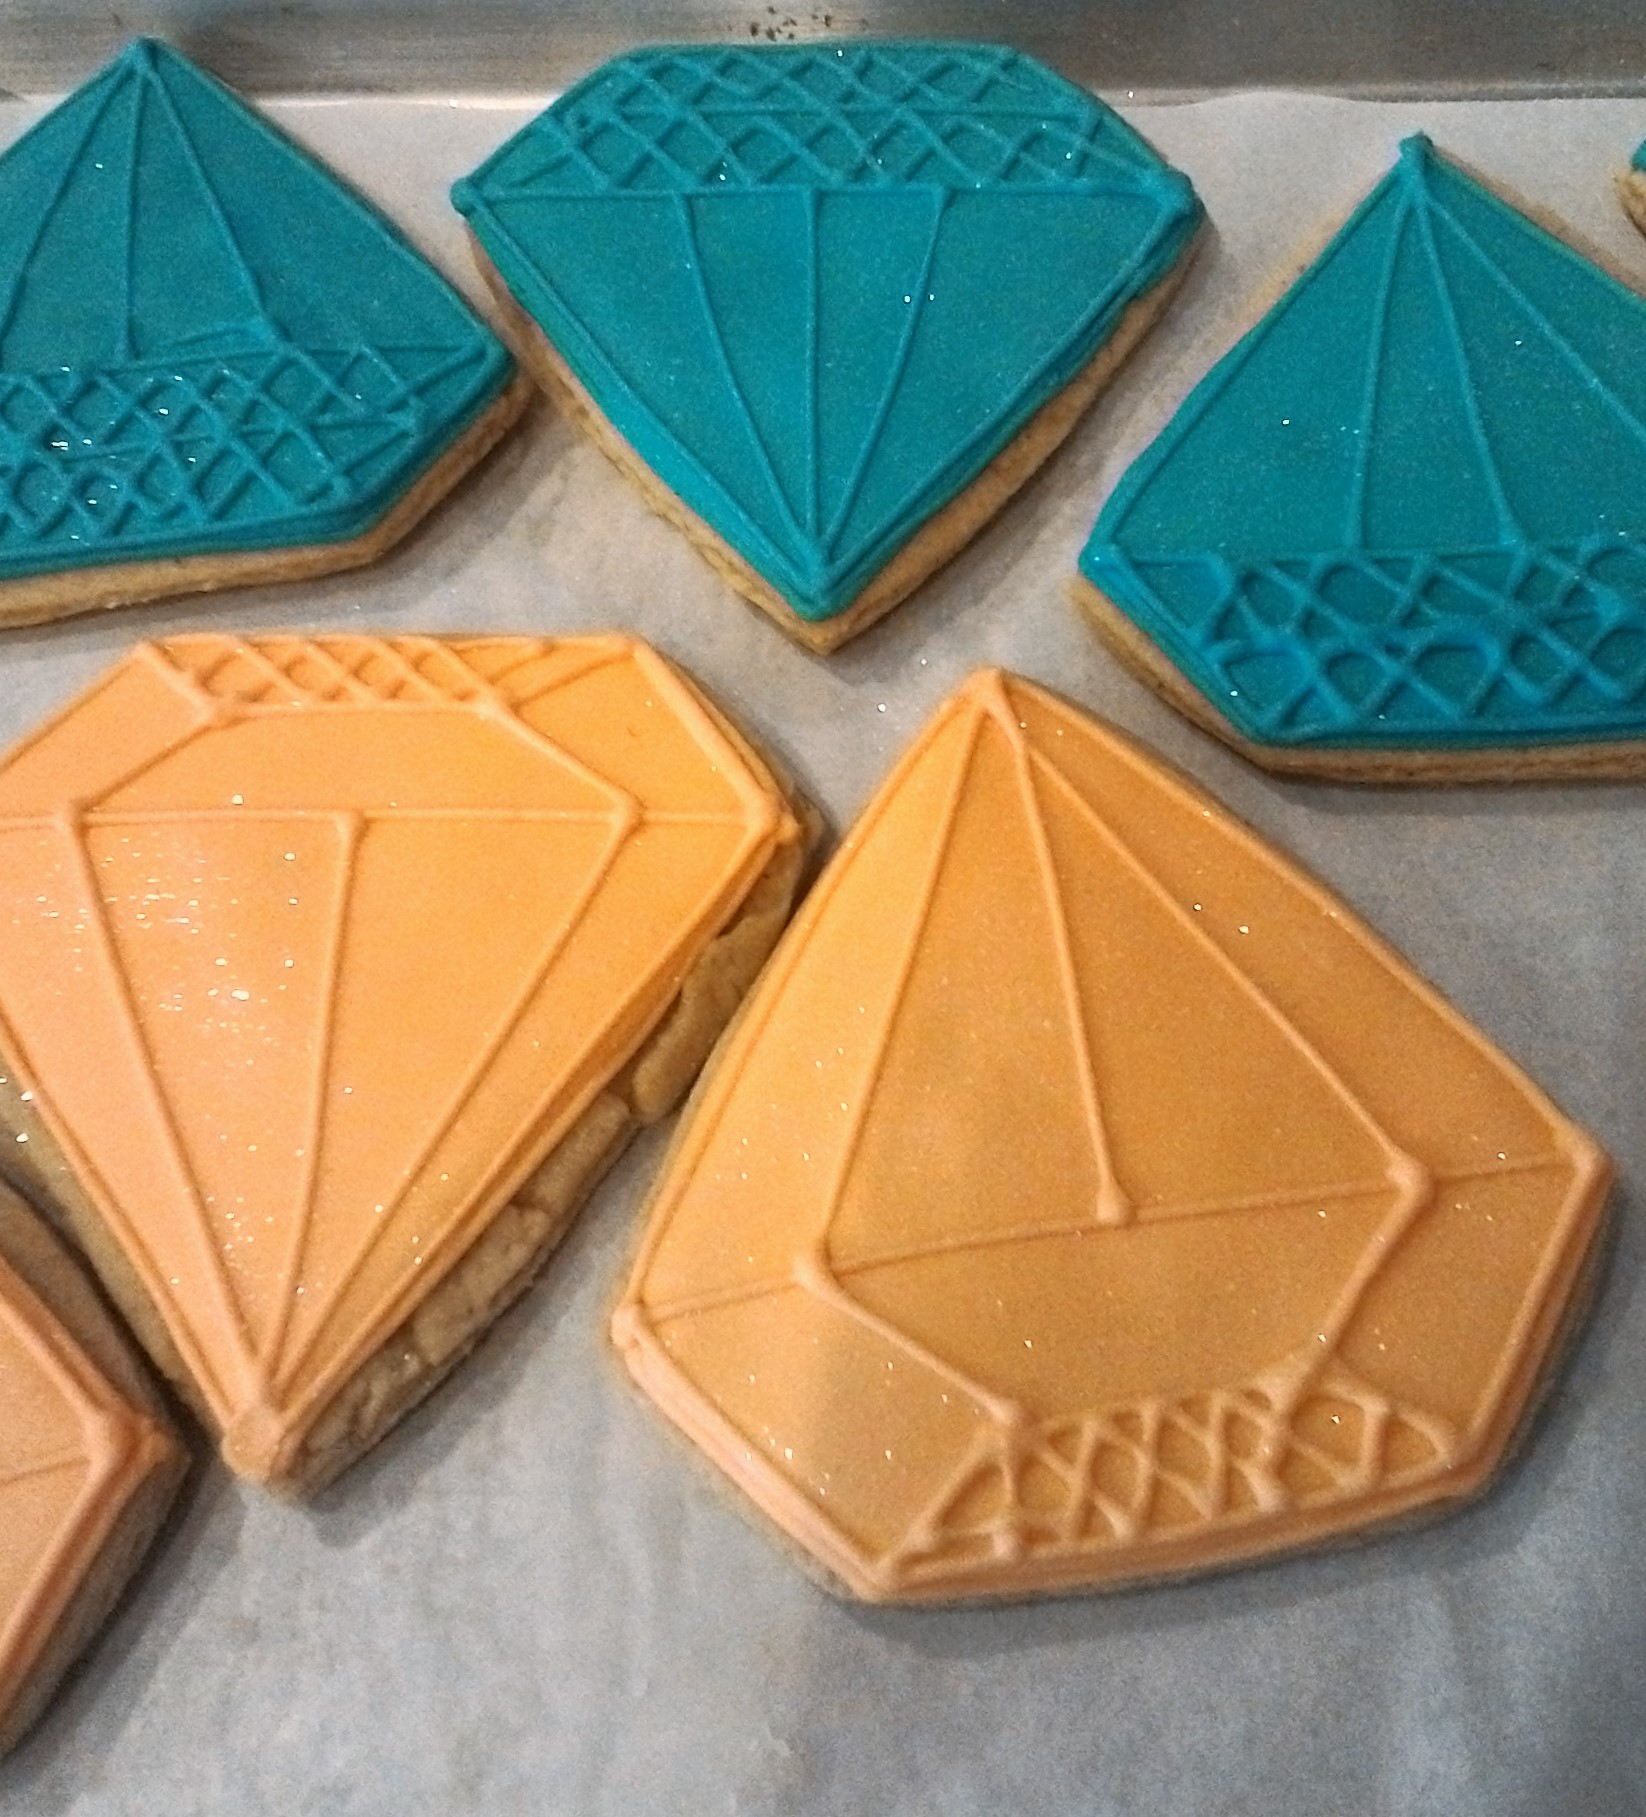 Jewel Cookies, Client's cutter